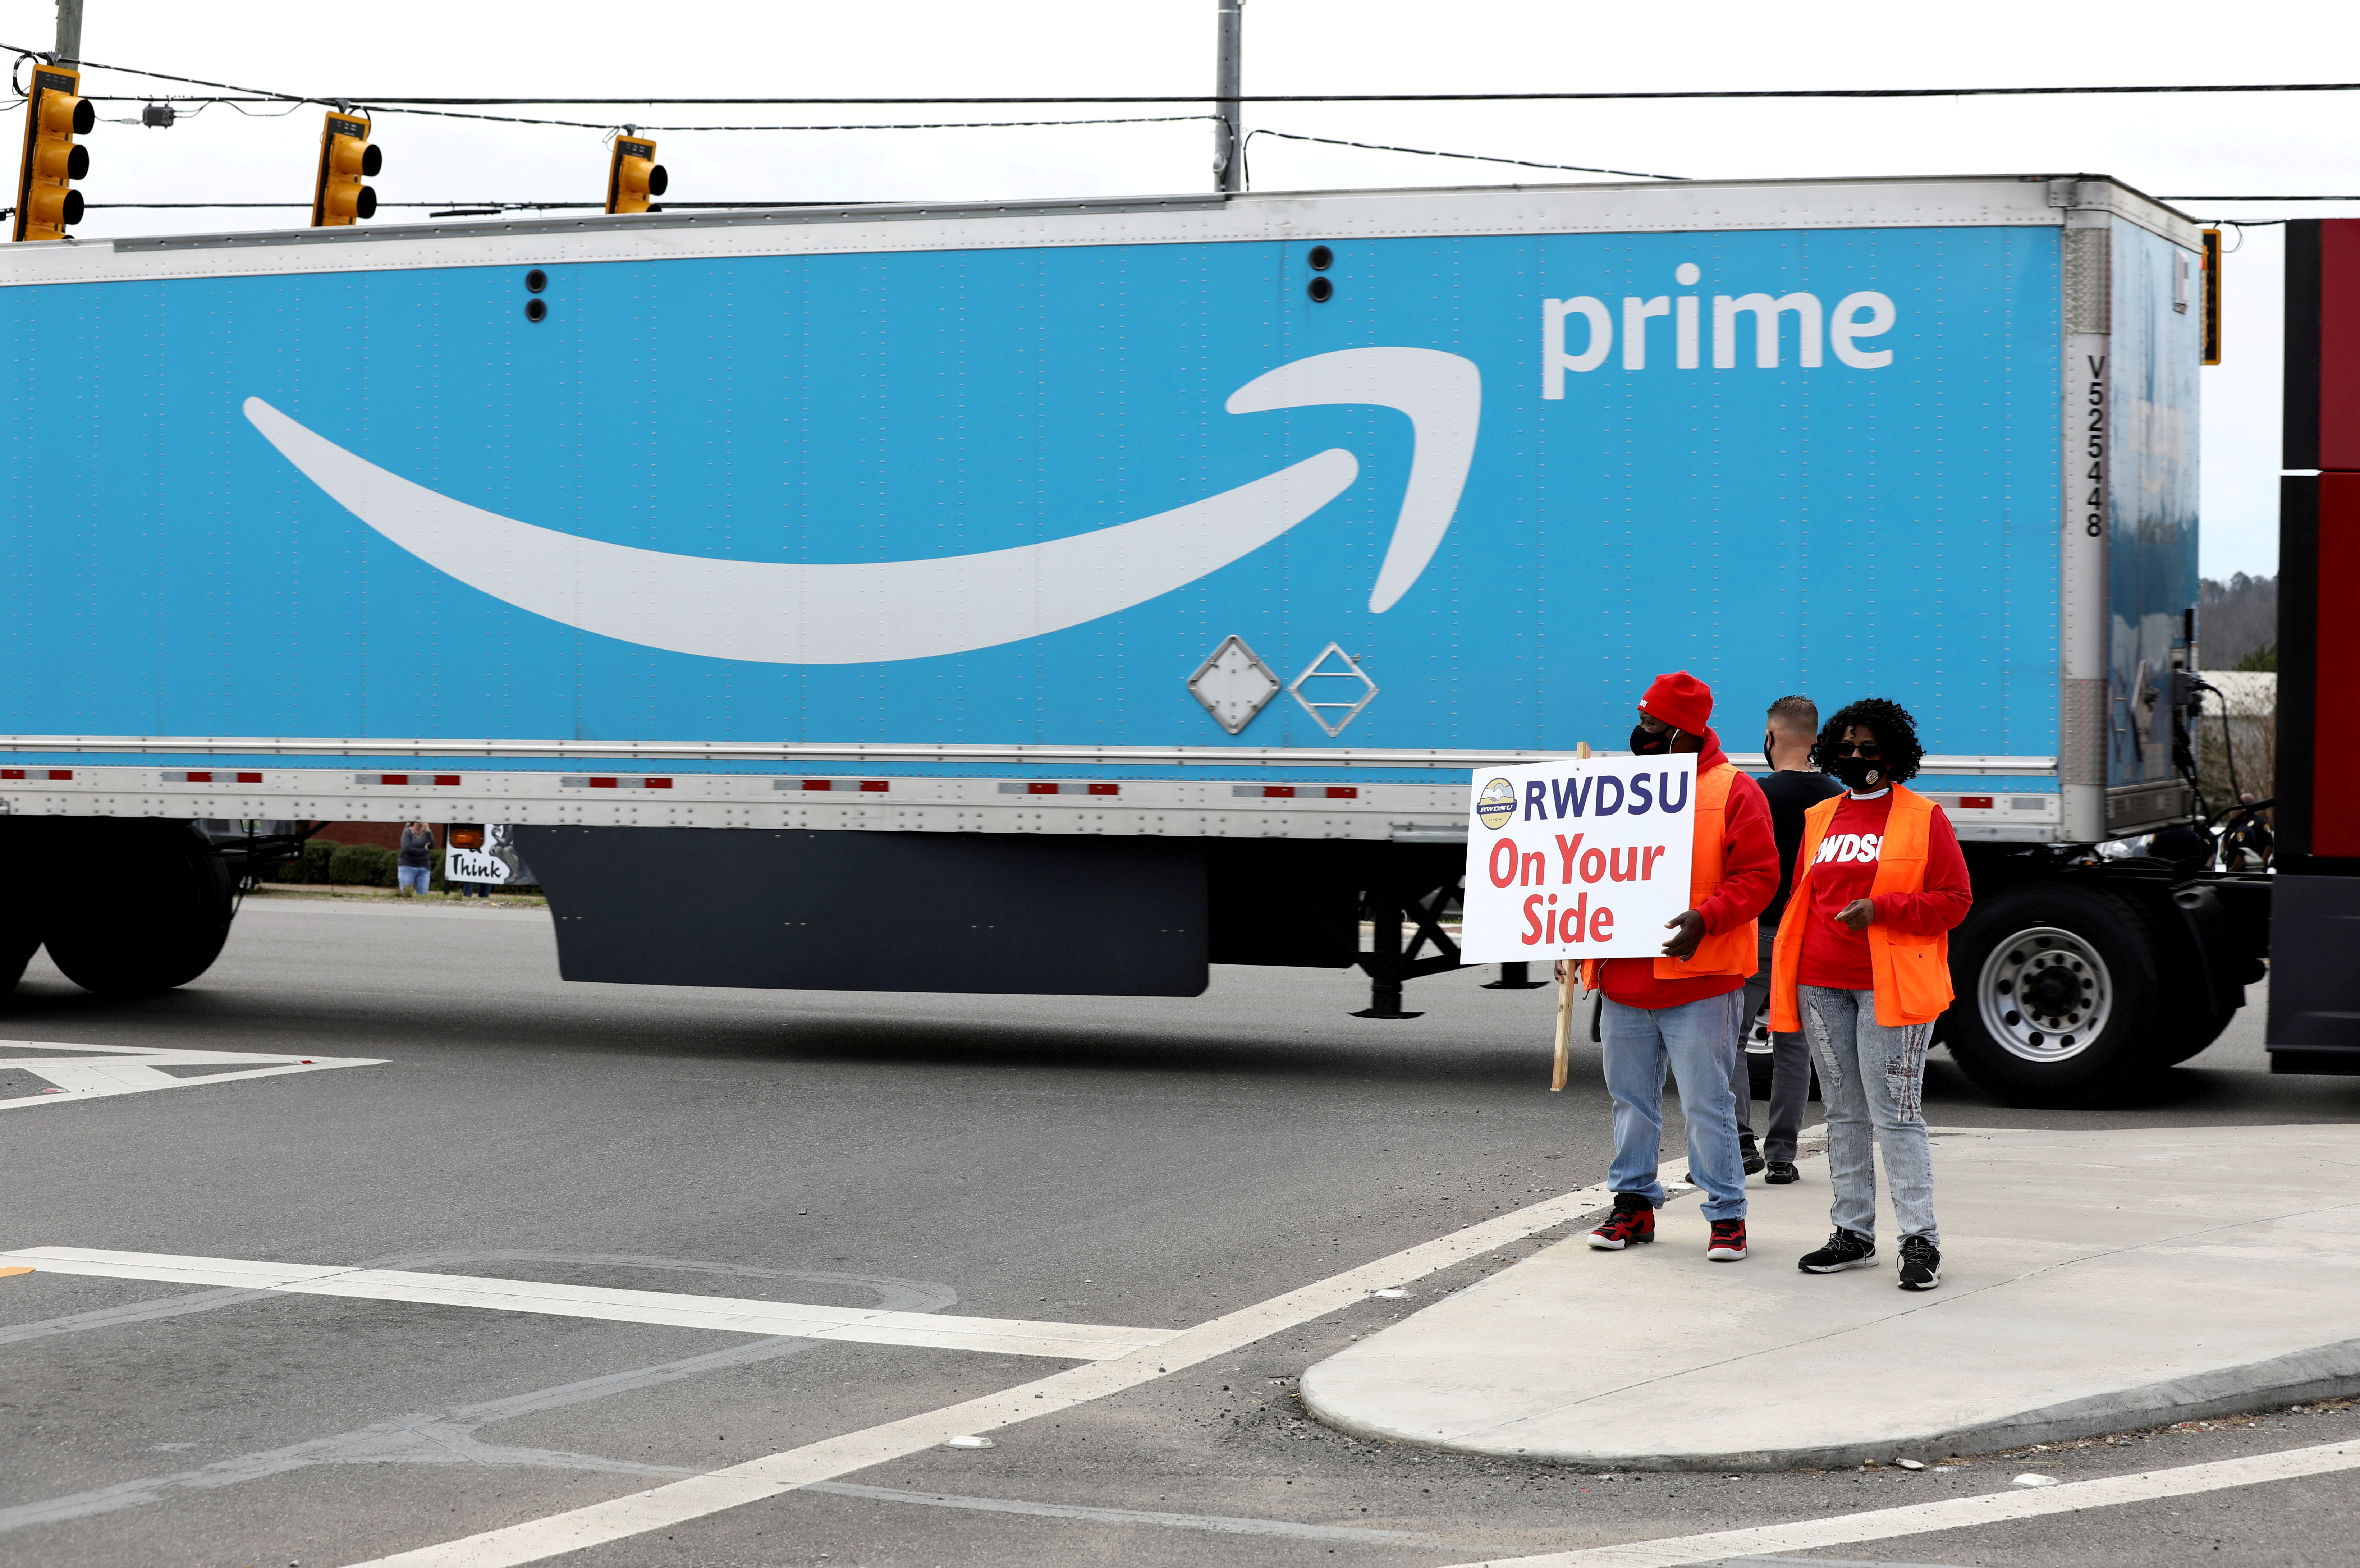 People hold a banner at the Amazon facility as members of a congressional delegation arrive to show their support for workers who will vote on whether to unionize, in Bessemer, Alabama, U.S. March 5, 2021.  REUTERS/Dustin Chambers/File Photo